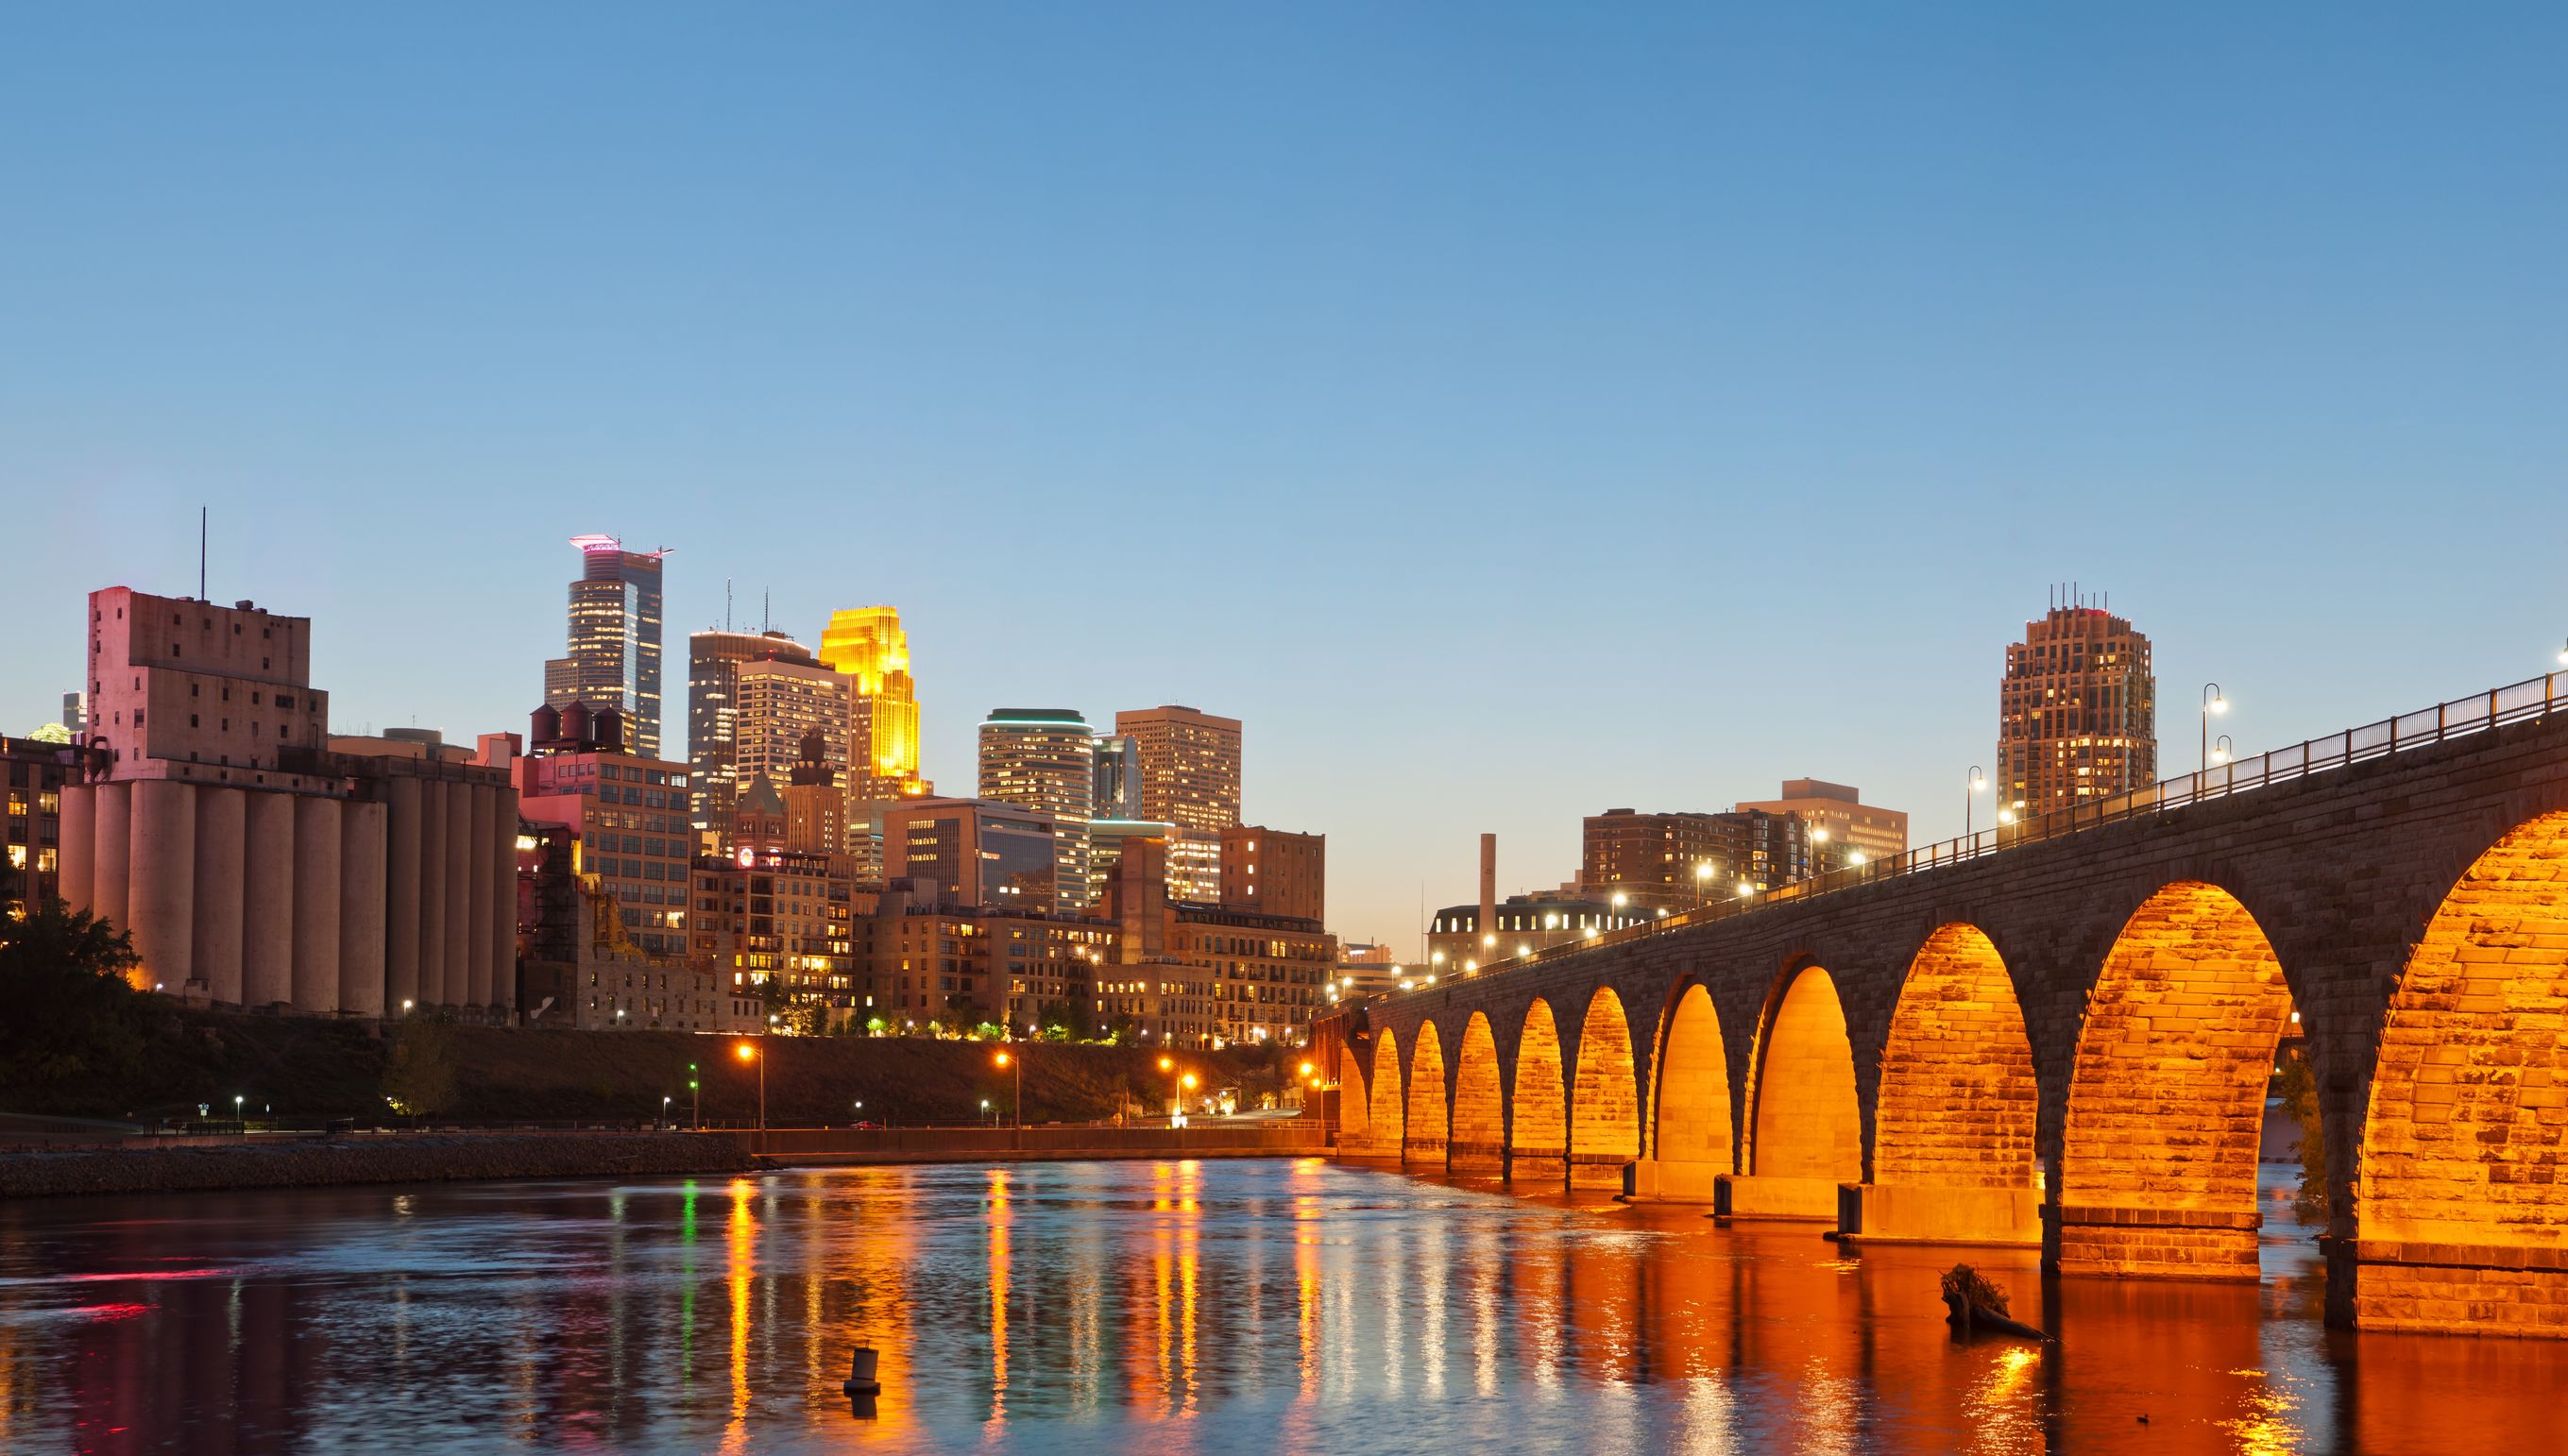 Minnesota Nice ensure that transplants from other states will quickly feel at home in Minneapolis. However, that process can be sped up with these tips: